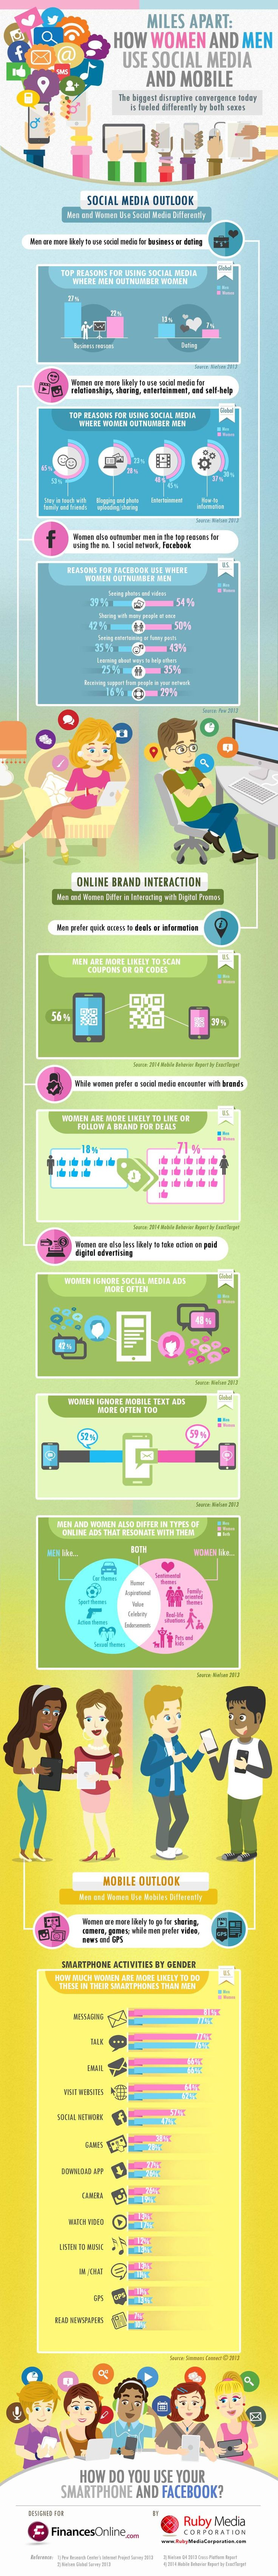 #SocialMedia and Smartphone Facts: Review of Why Men Look For Business & Love While Women Seek Games & Knowledge - #infographic